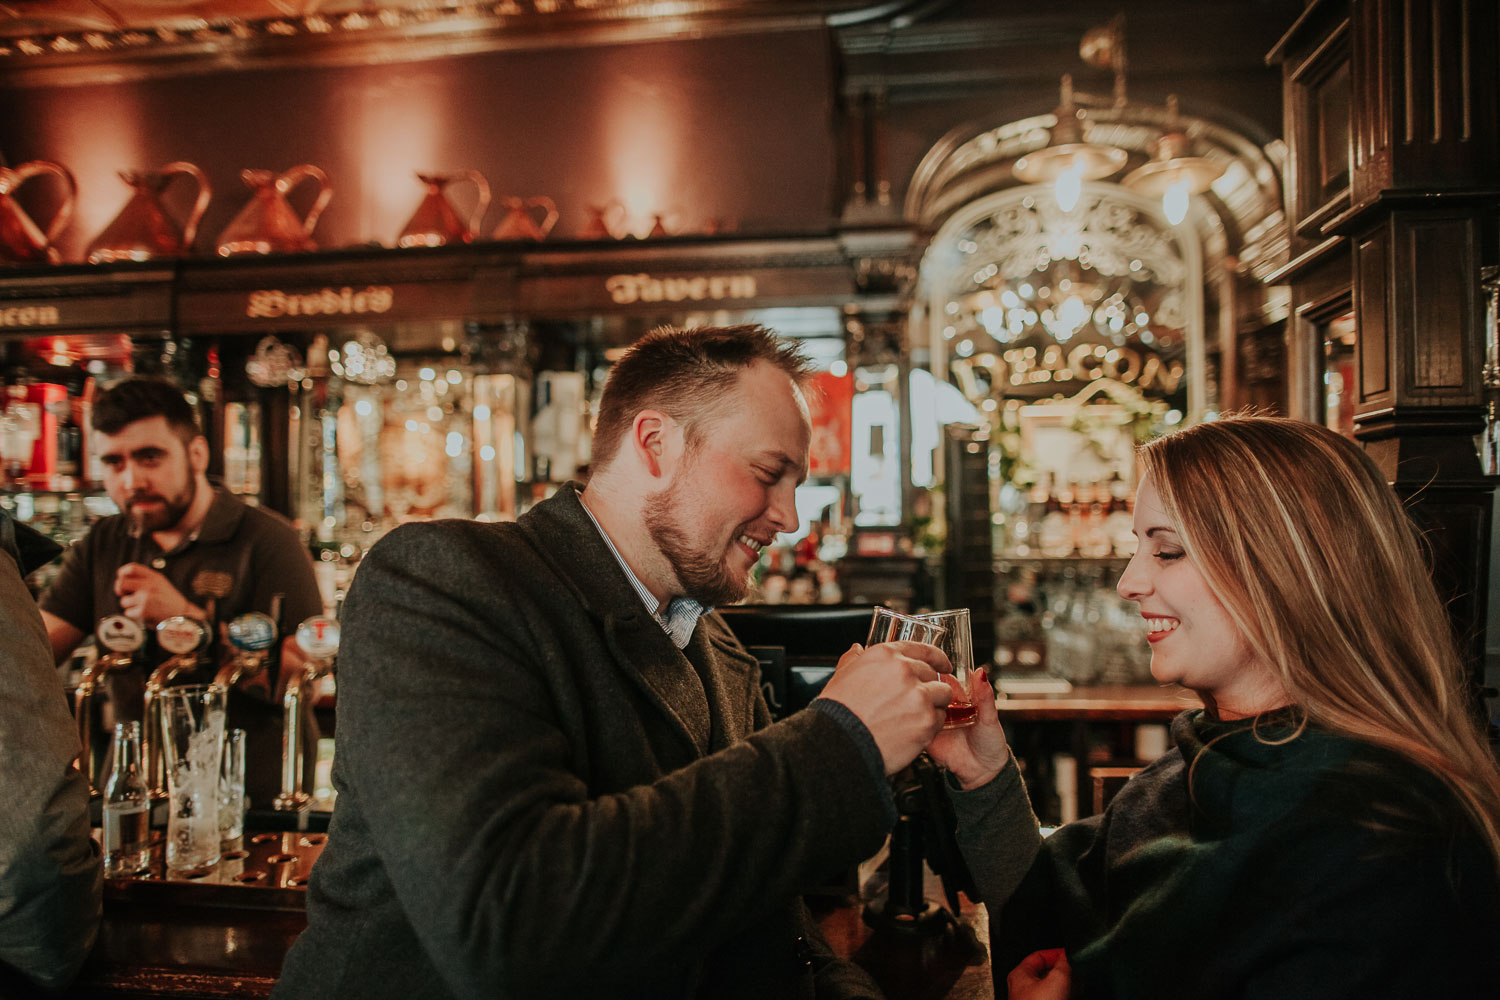 Moody destination spring engagement session in Old Town of Edinburgh, Scotland. Rainy engagement in Deacon Brodie's Tavern by destination photographer